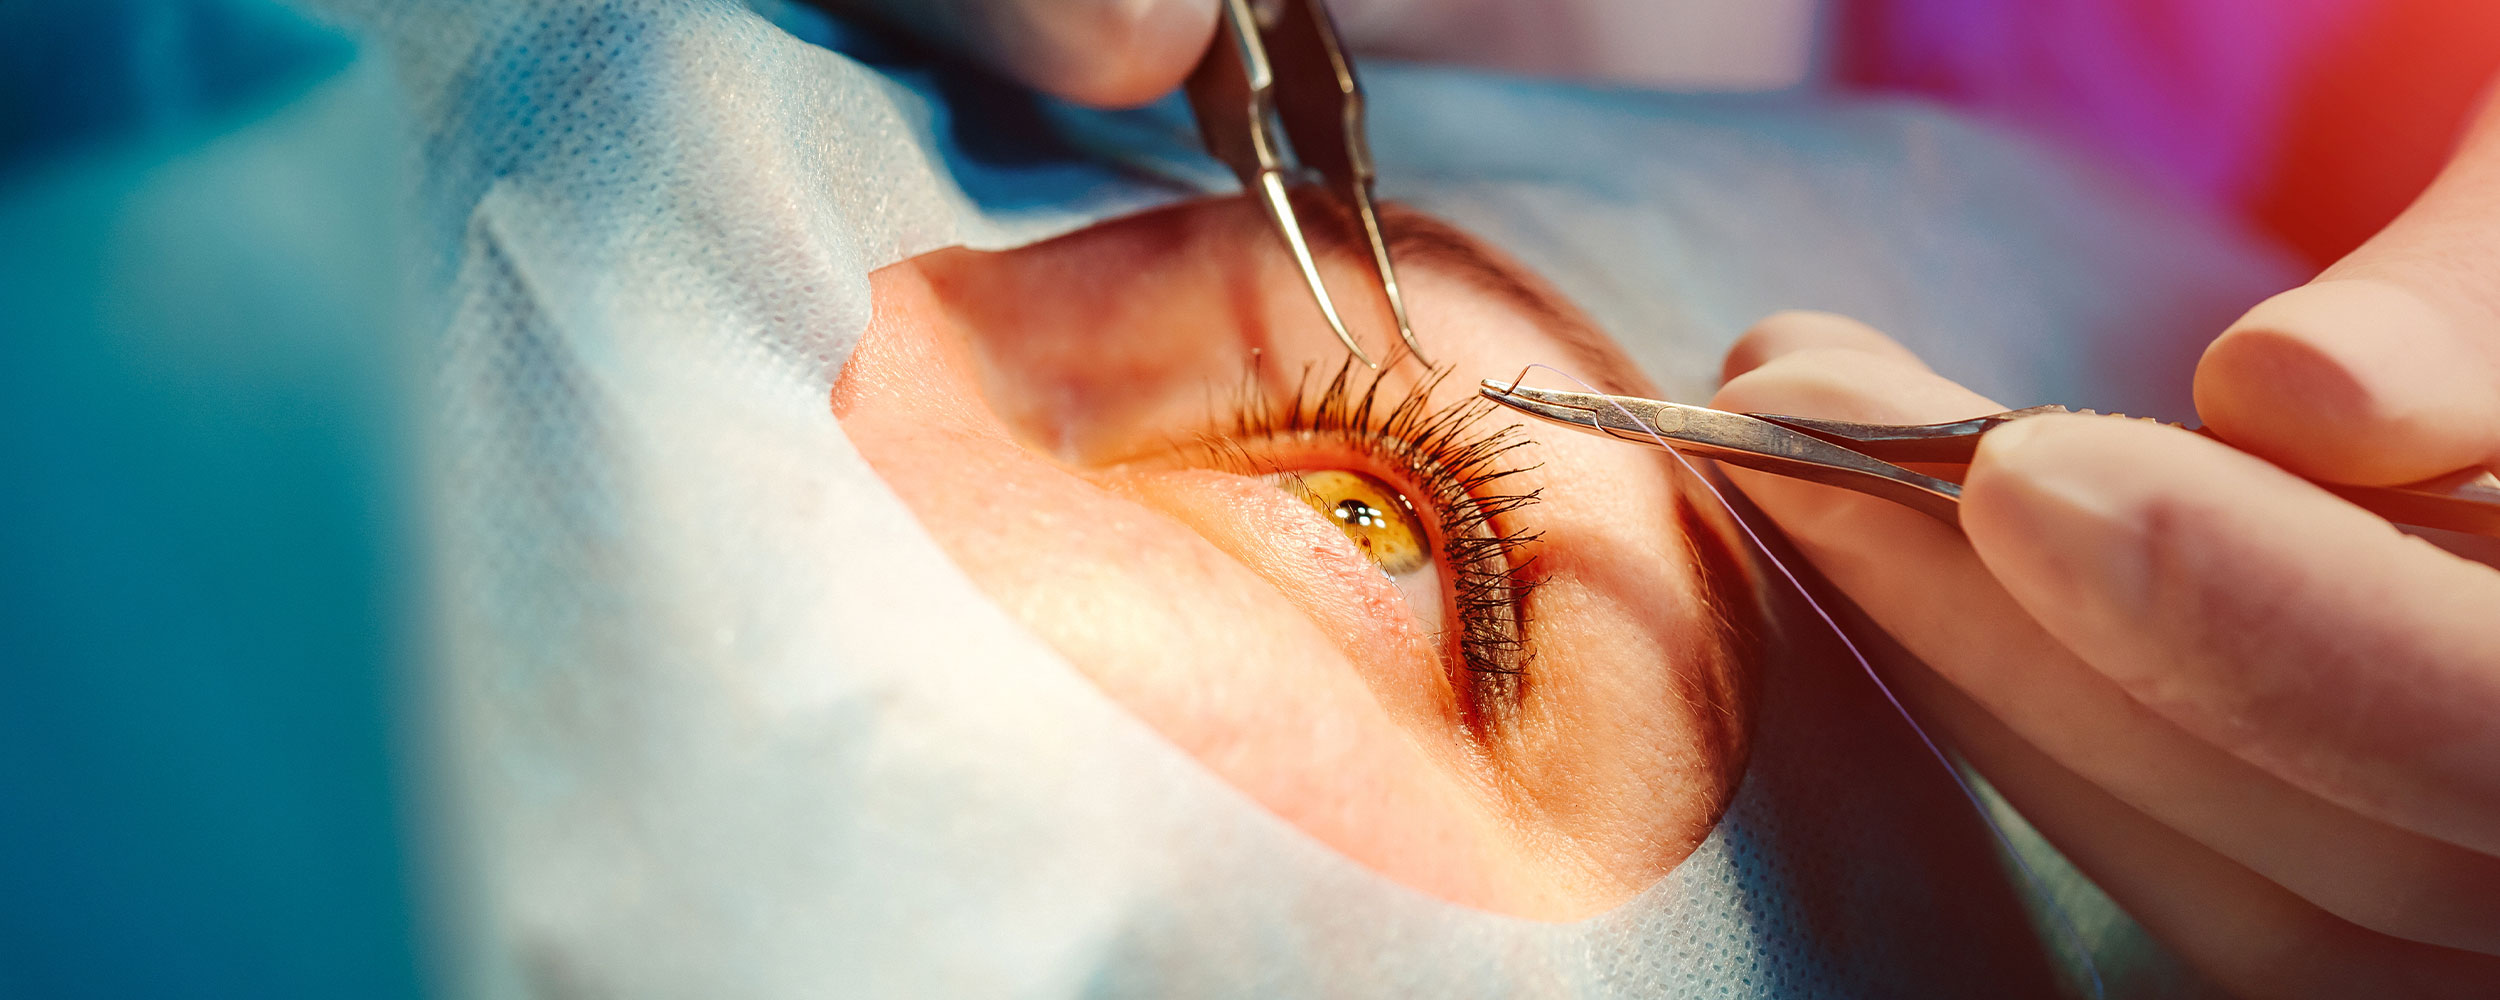 Doctor working on patients eye image